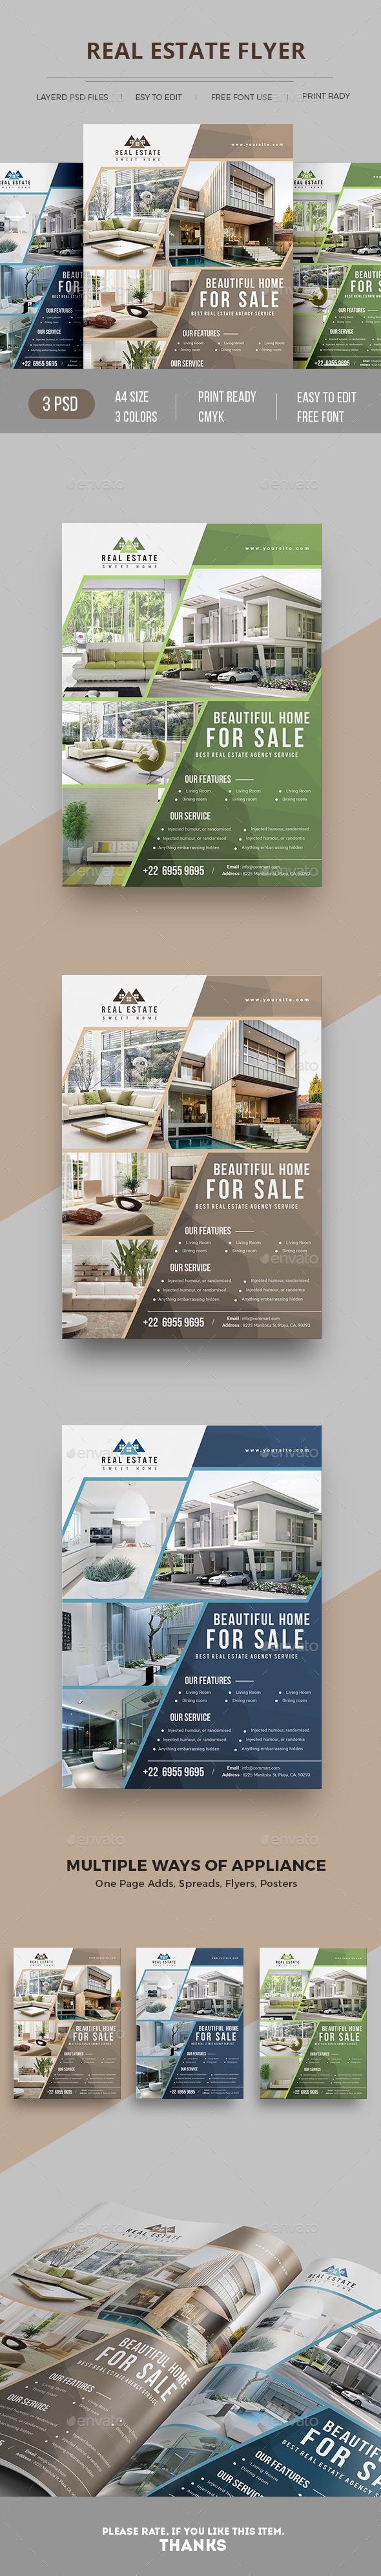 #Real Estate #Flyer - Commerce Flyers Download here: https://graphicriver.net/item/real-estate-flyer/19738534?ref=alena994